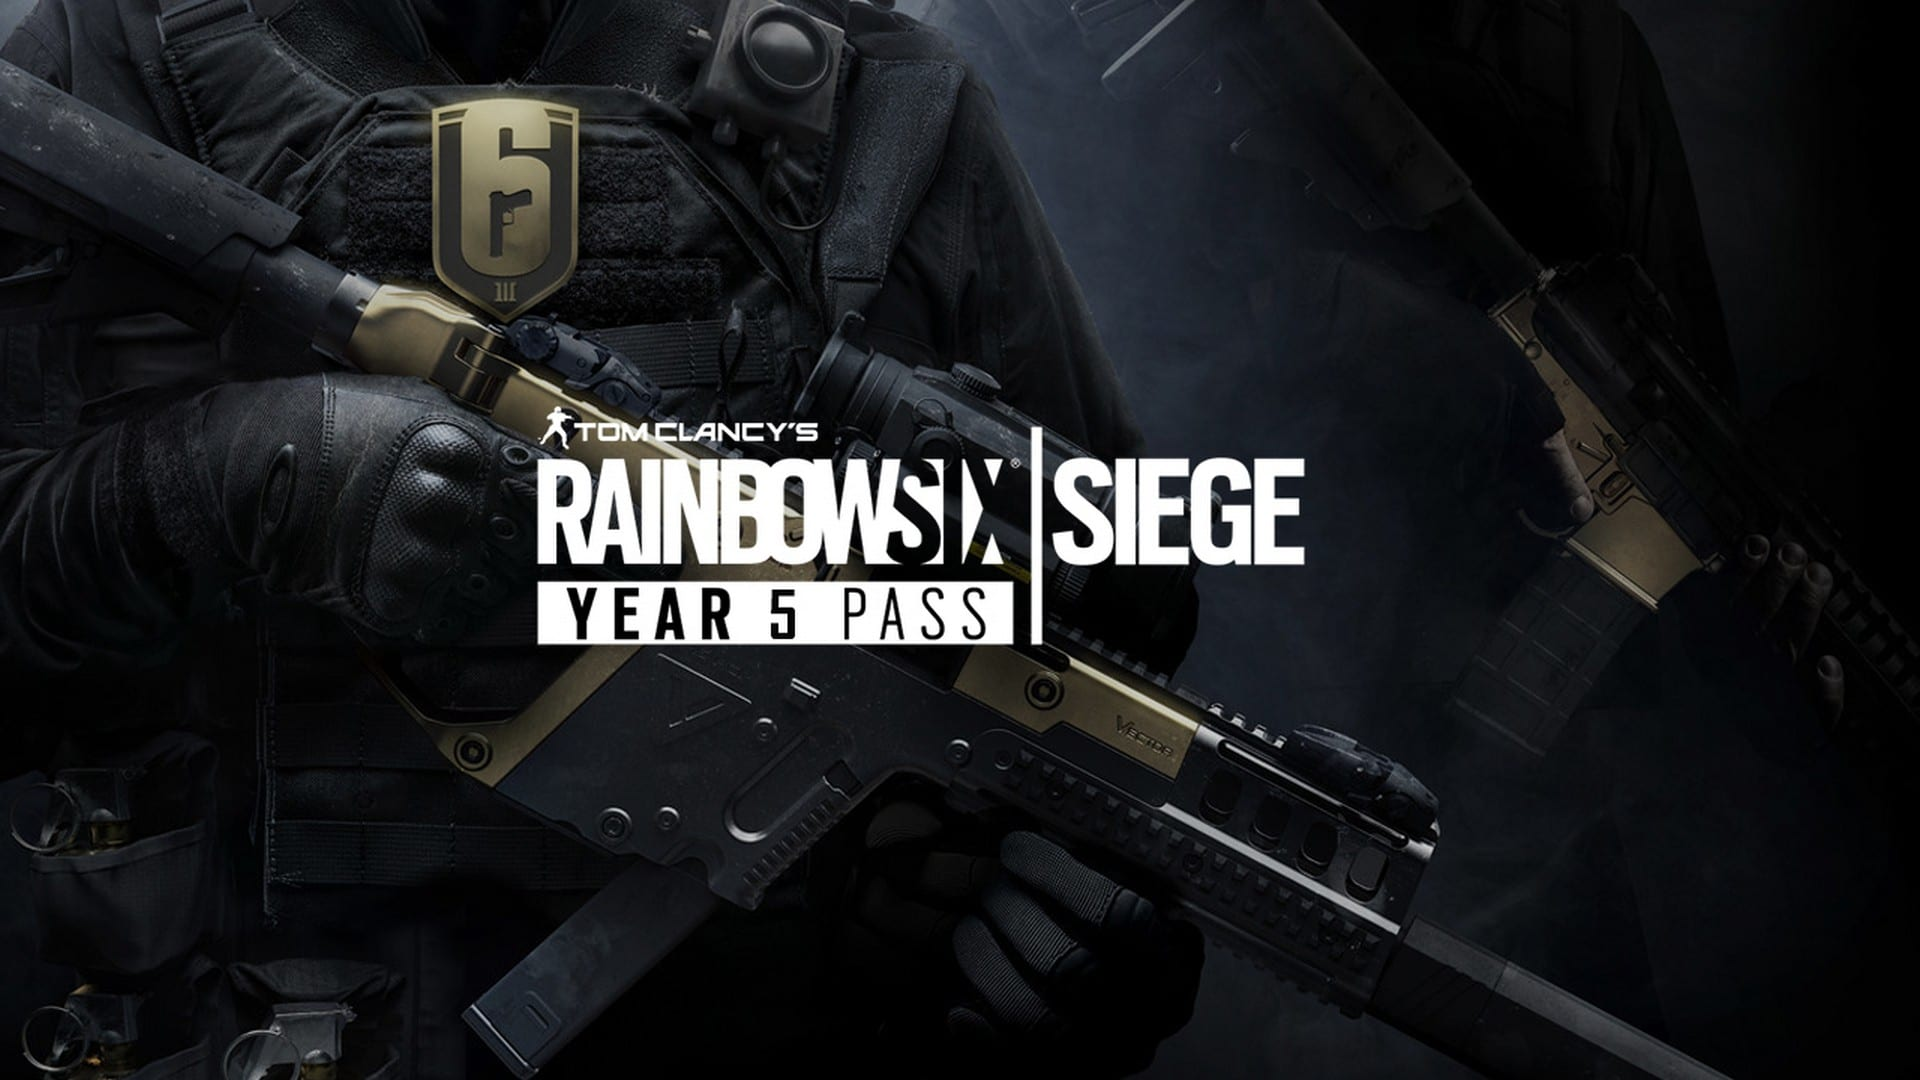 Tom Clancy's Rainbow Six: Siege - Year 5 Pass